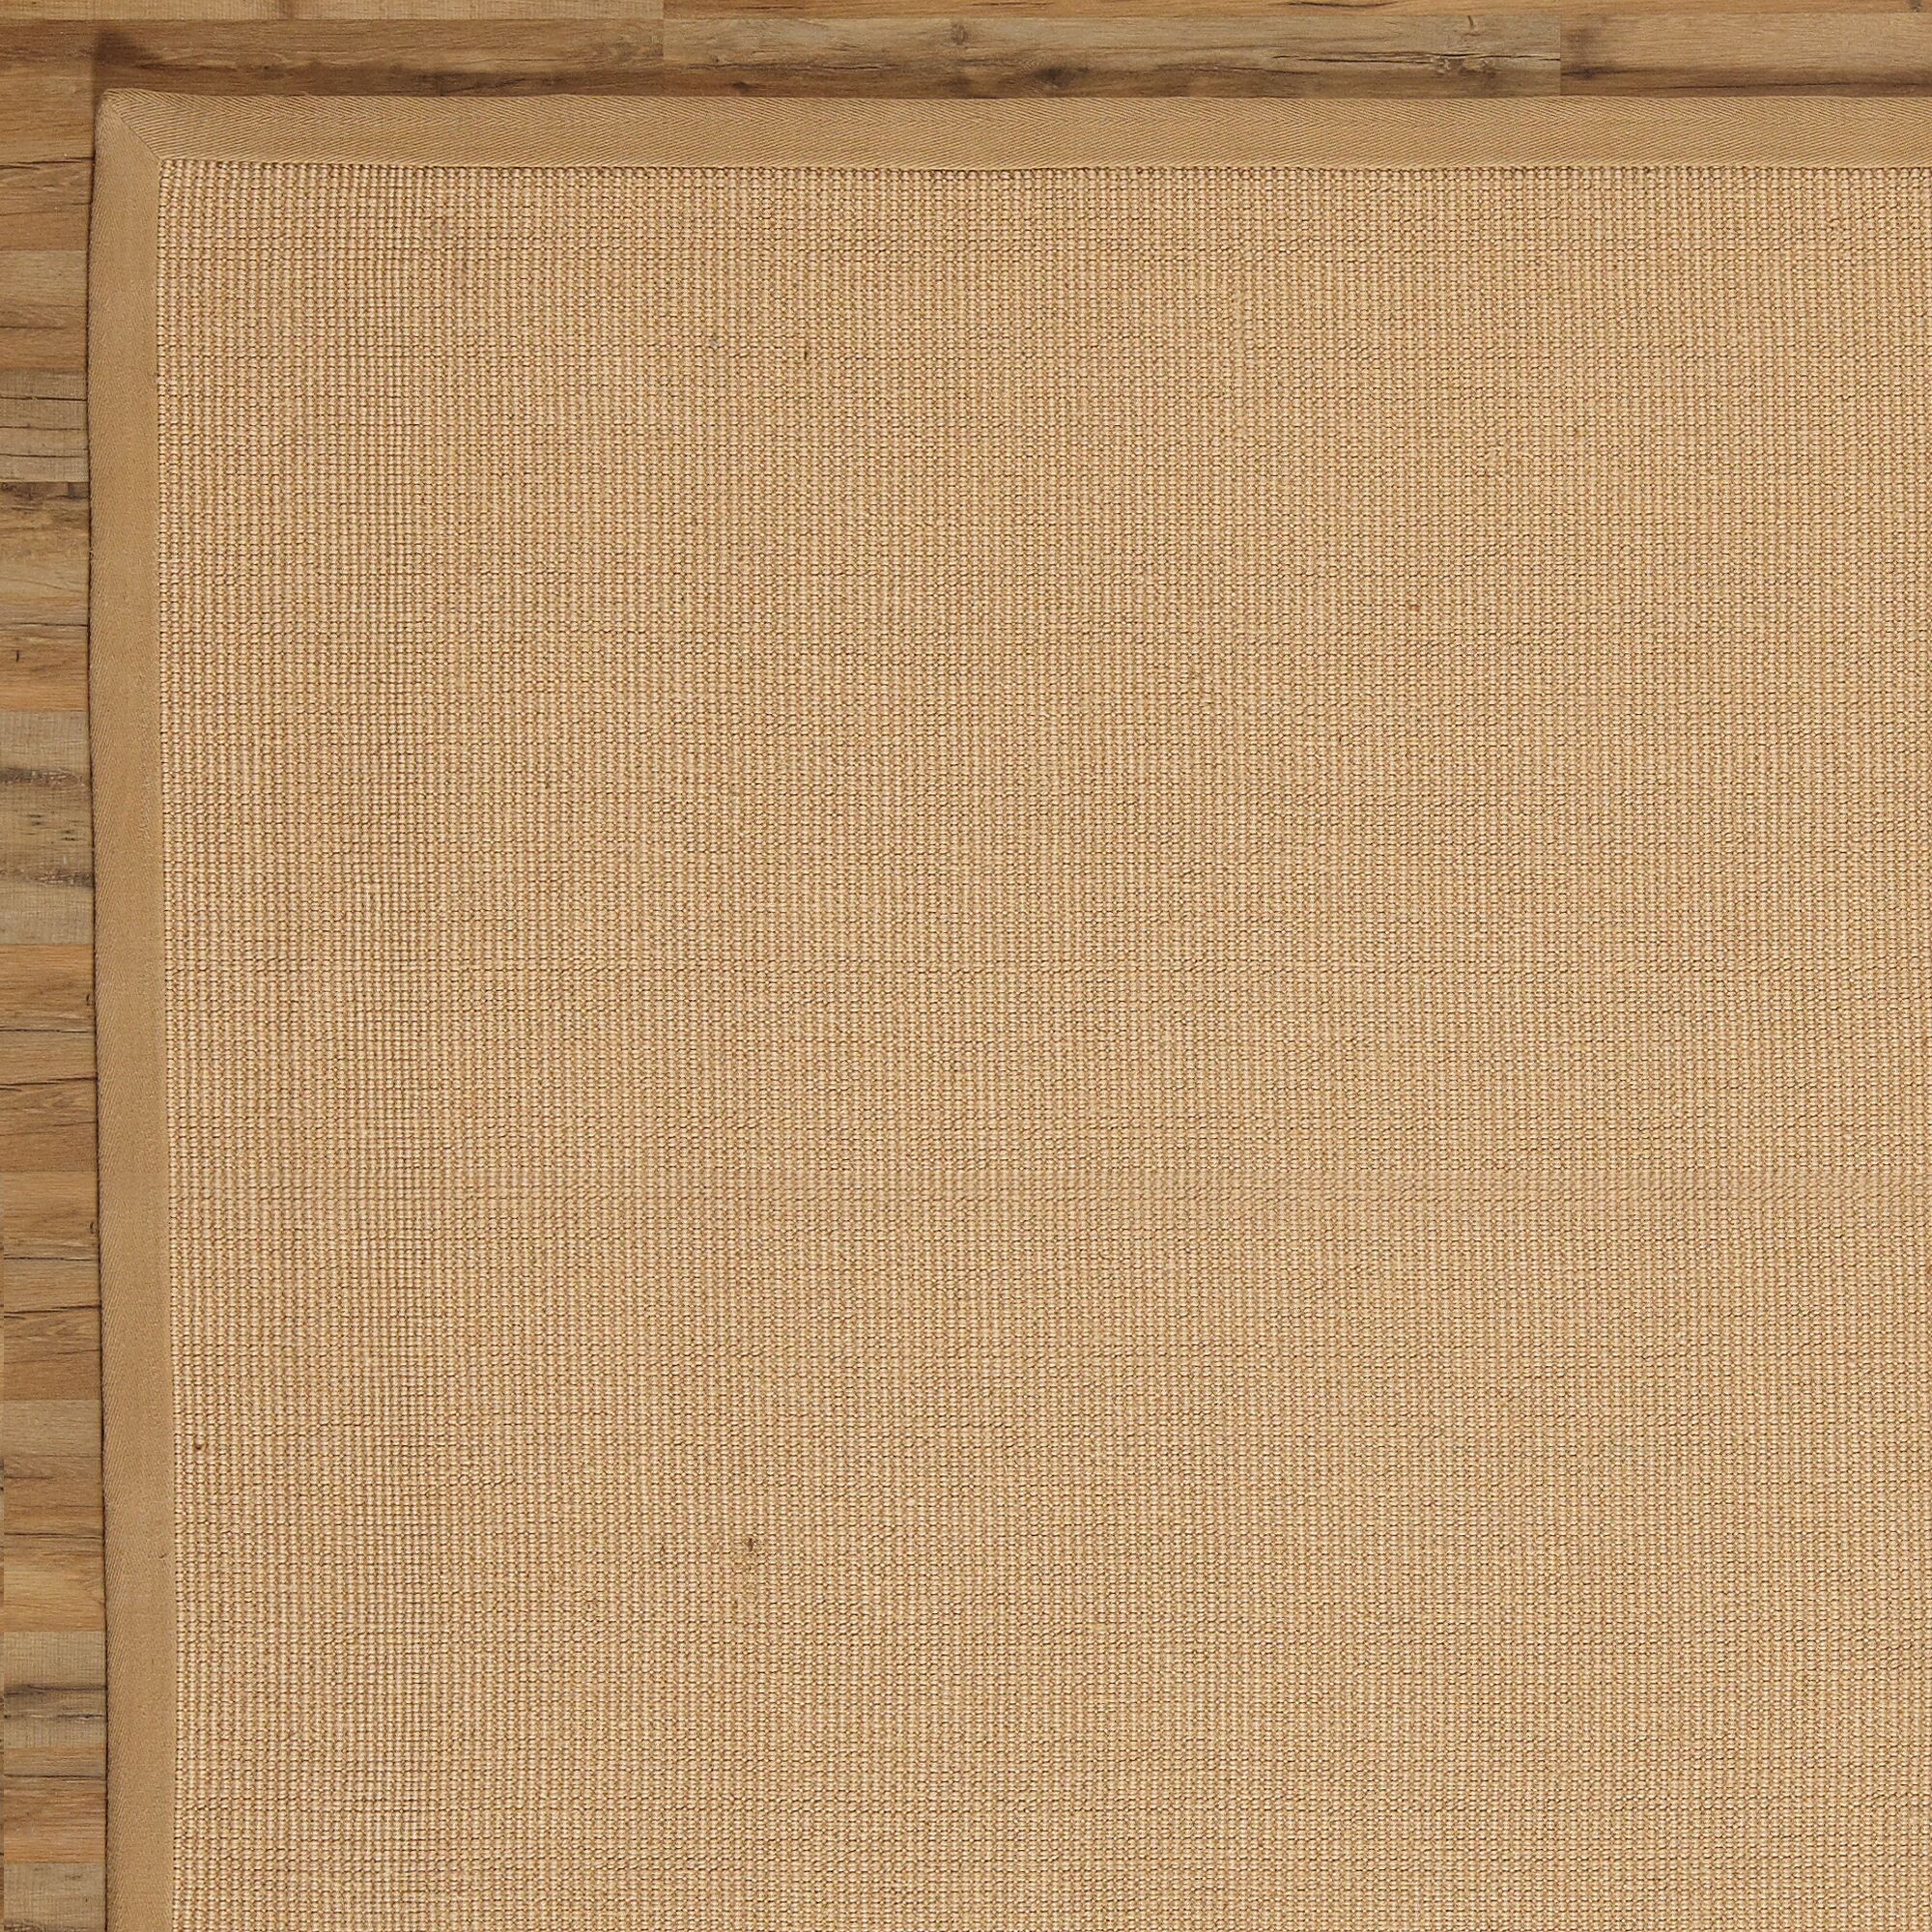 Sasha Hand-Woven Jute Natural Area Rug Rug Size: Rectangle 8' x 10'